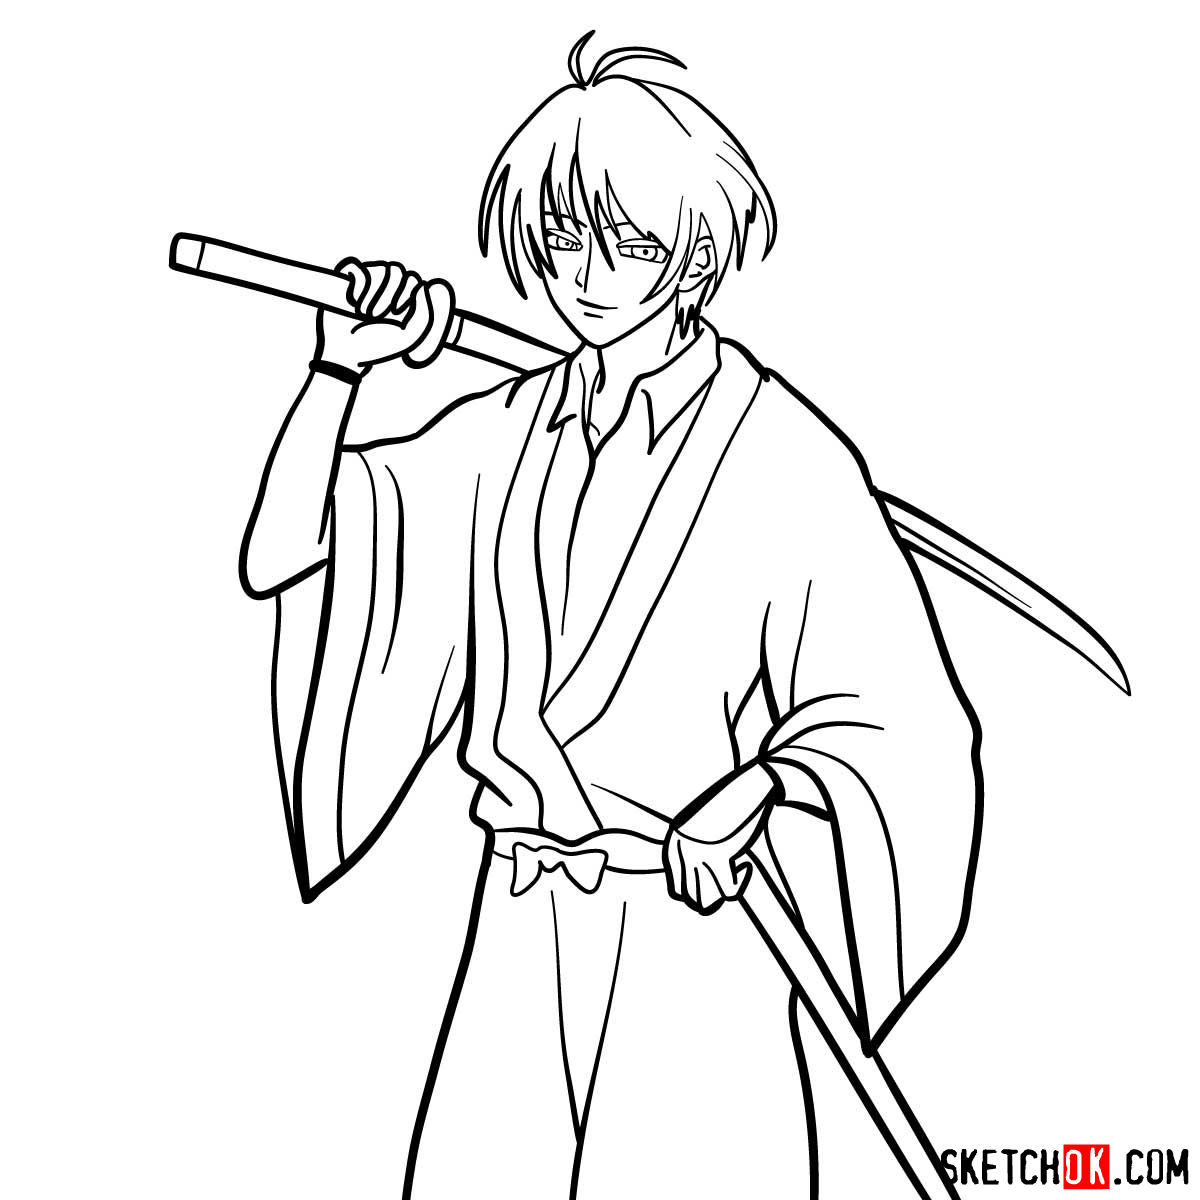 How to draw Seta Sojiro | Rurouni Kenshin